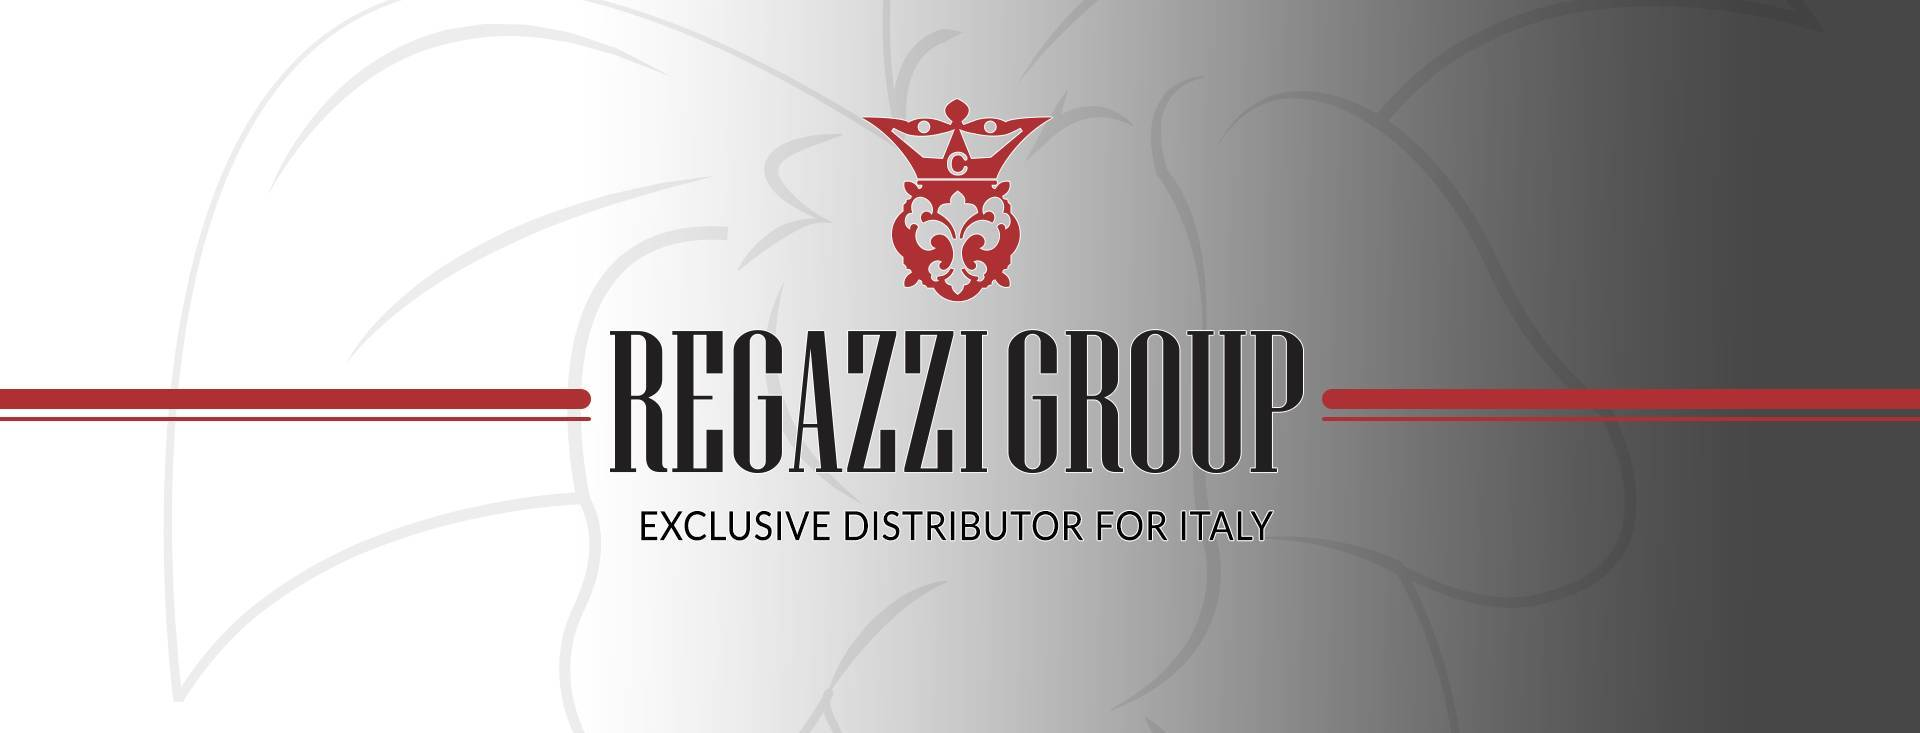 Categoria exclusive distributor for Italy